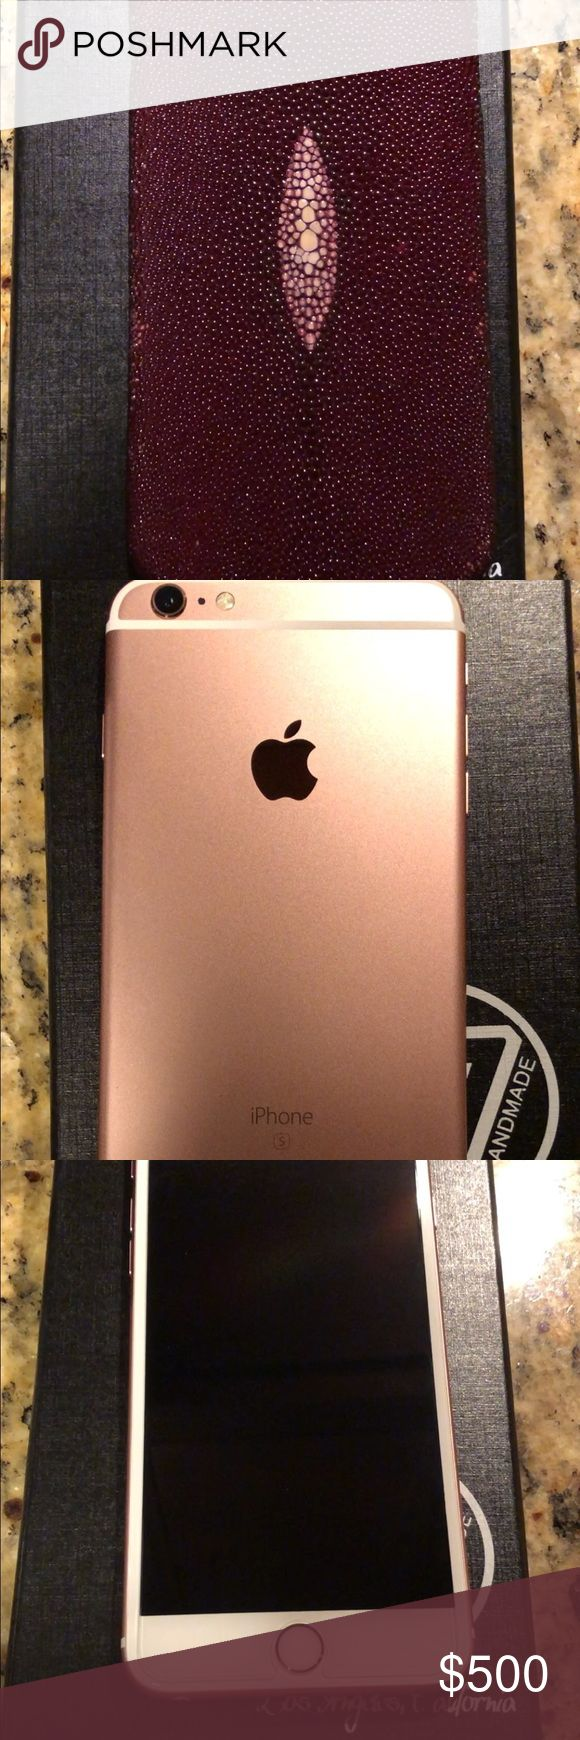 iPhone/protective glass cover Stingray Case condition: like new  make / manufacturer: APPLE  mobile OS: apple iOS  model name / number: IPHONE 6S PLUS  IPHONE: 6S PLUS Color: ROSE GOLD GB:128 IN FLAWLESS CONDITION LIKE NEW! NO SCRATCHES, NO DENTS...  SPRINT PROVIDER: PHONE IS CLEAN SOLD WITH PROTECTIVE SREEN GLASS COVER AND DESIGNERS STINGRAY CASE  SERIOUS BUYERS ONLY!!!  $500 PRICE NOT NEGOTIABLE & Other Stories Other